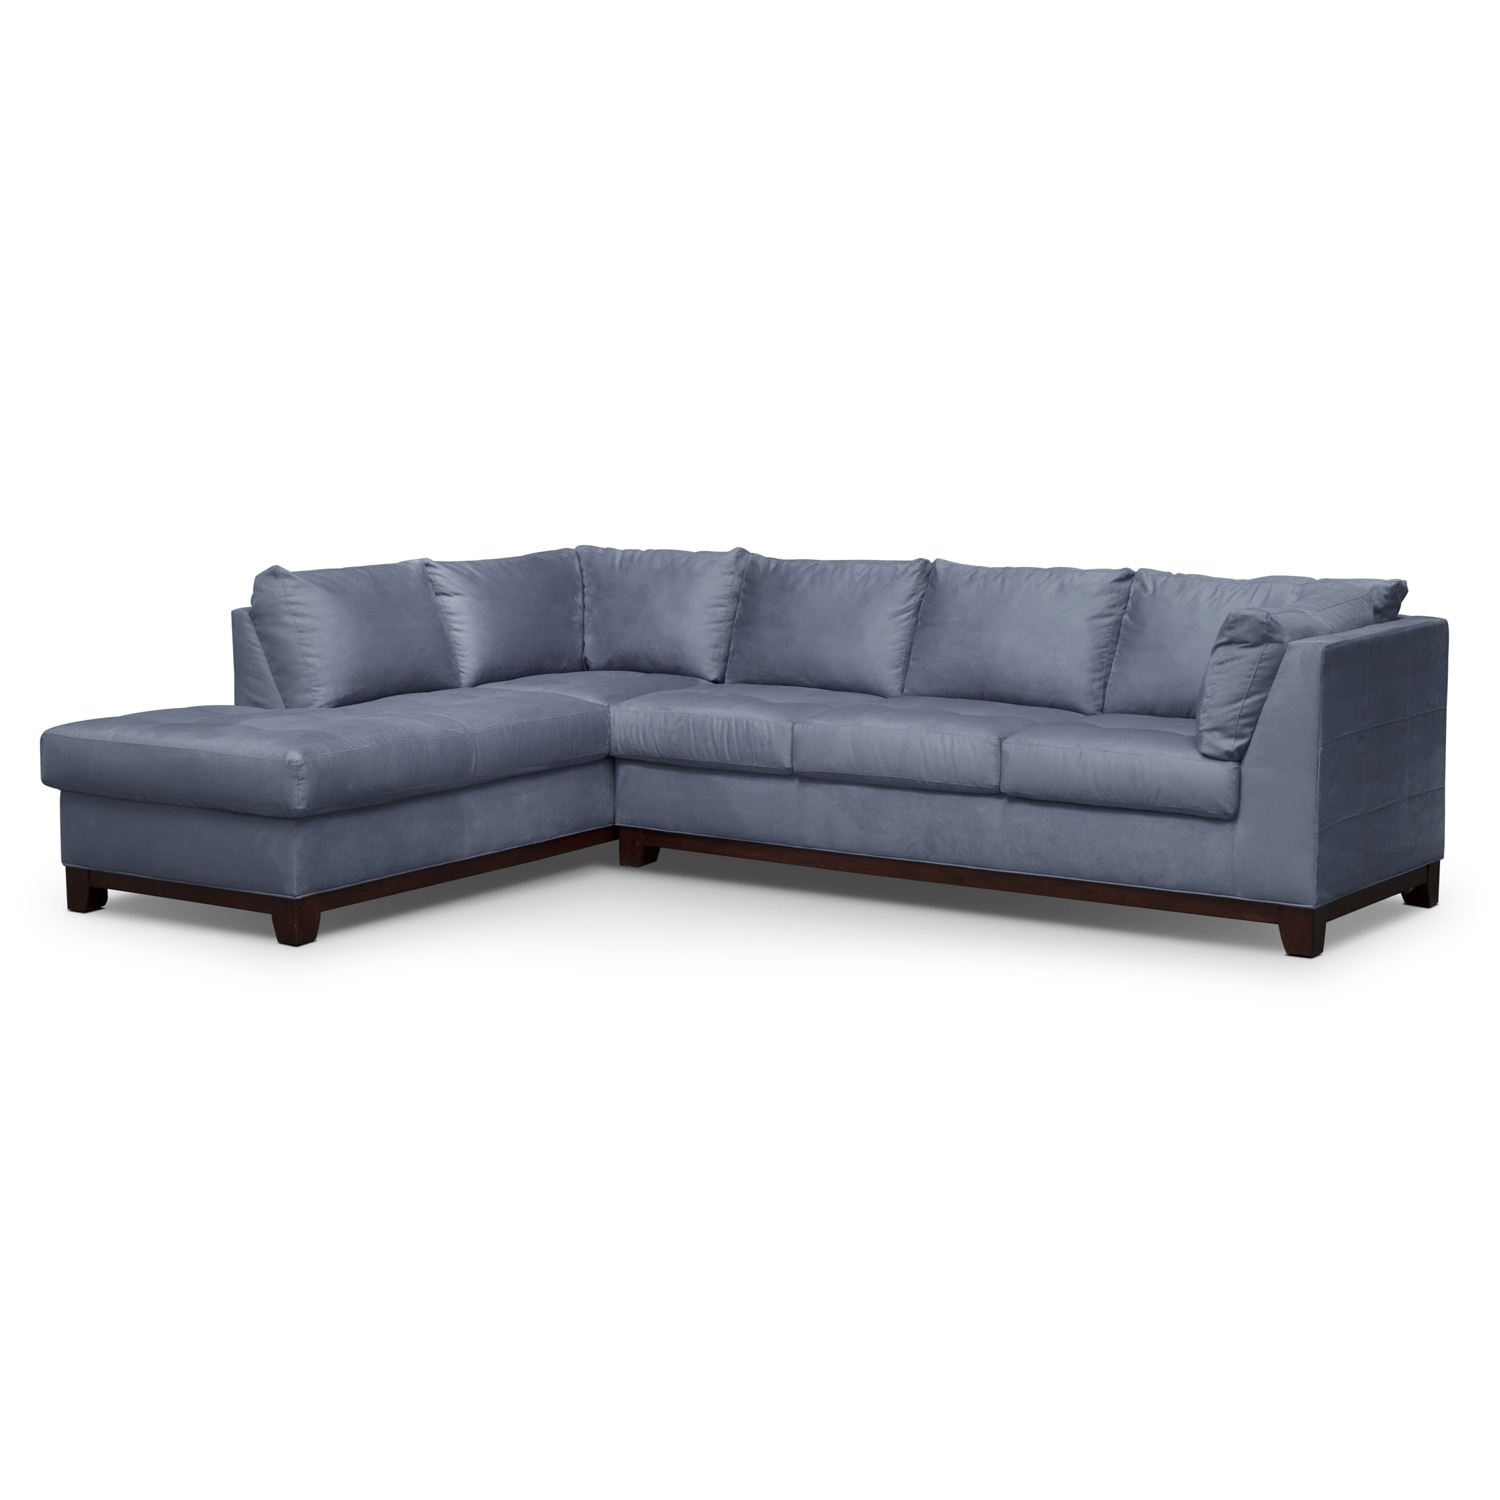 45 Degree Sectional Sofa Sofa Menzilperde In 45 Degree Sectional Sofa (#4 of 12)